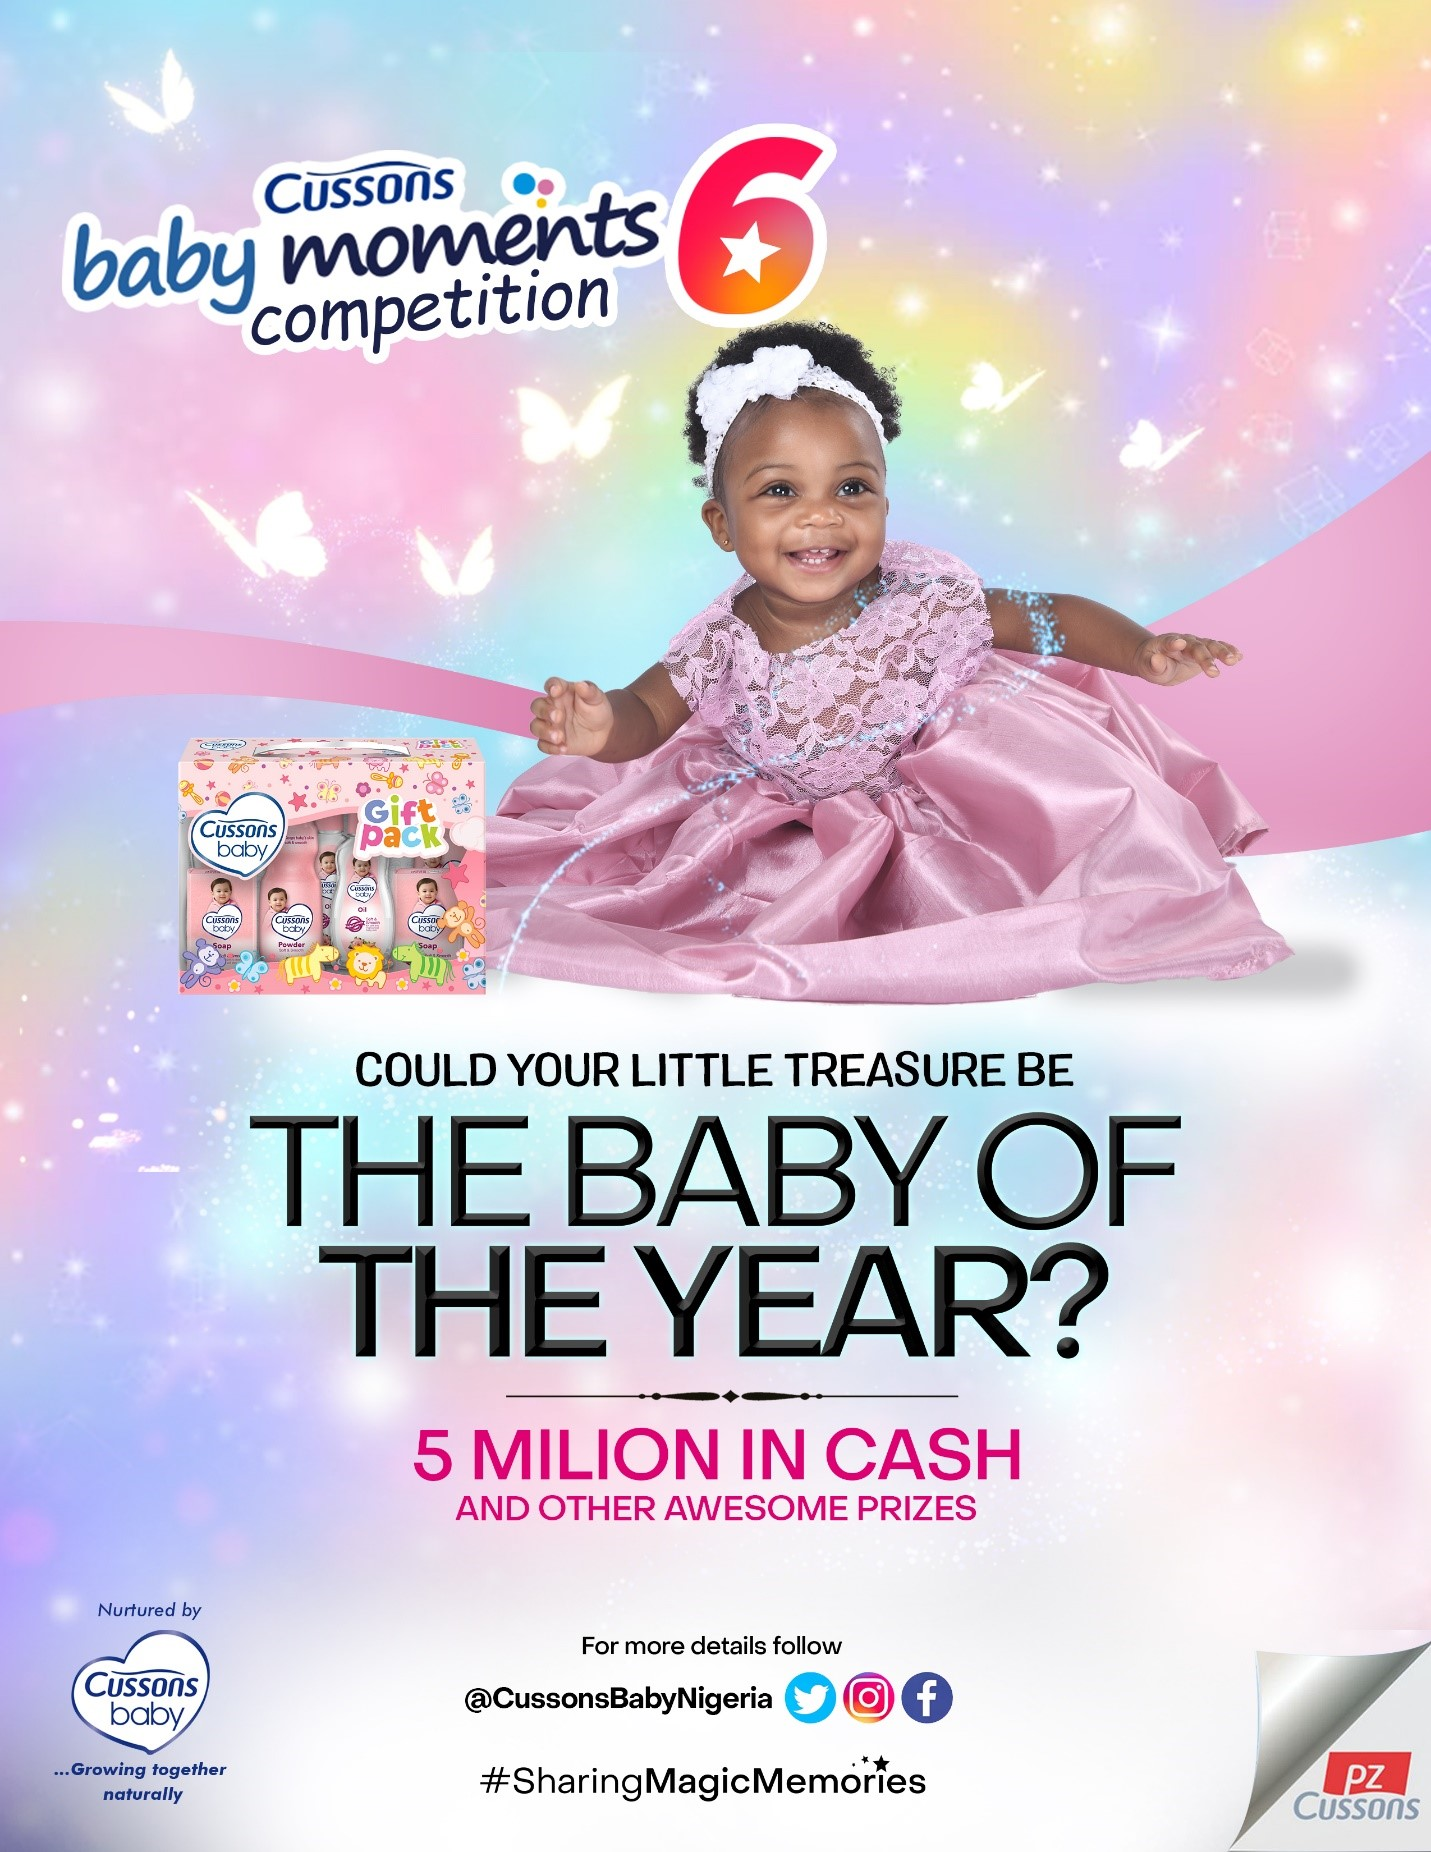 Cussons Baby Moments 6